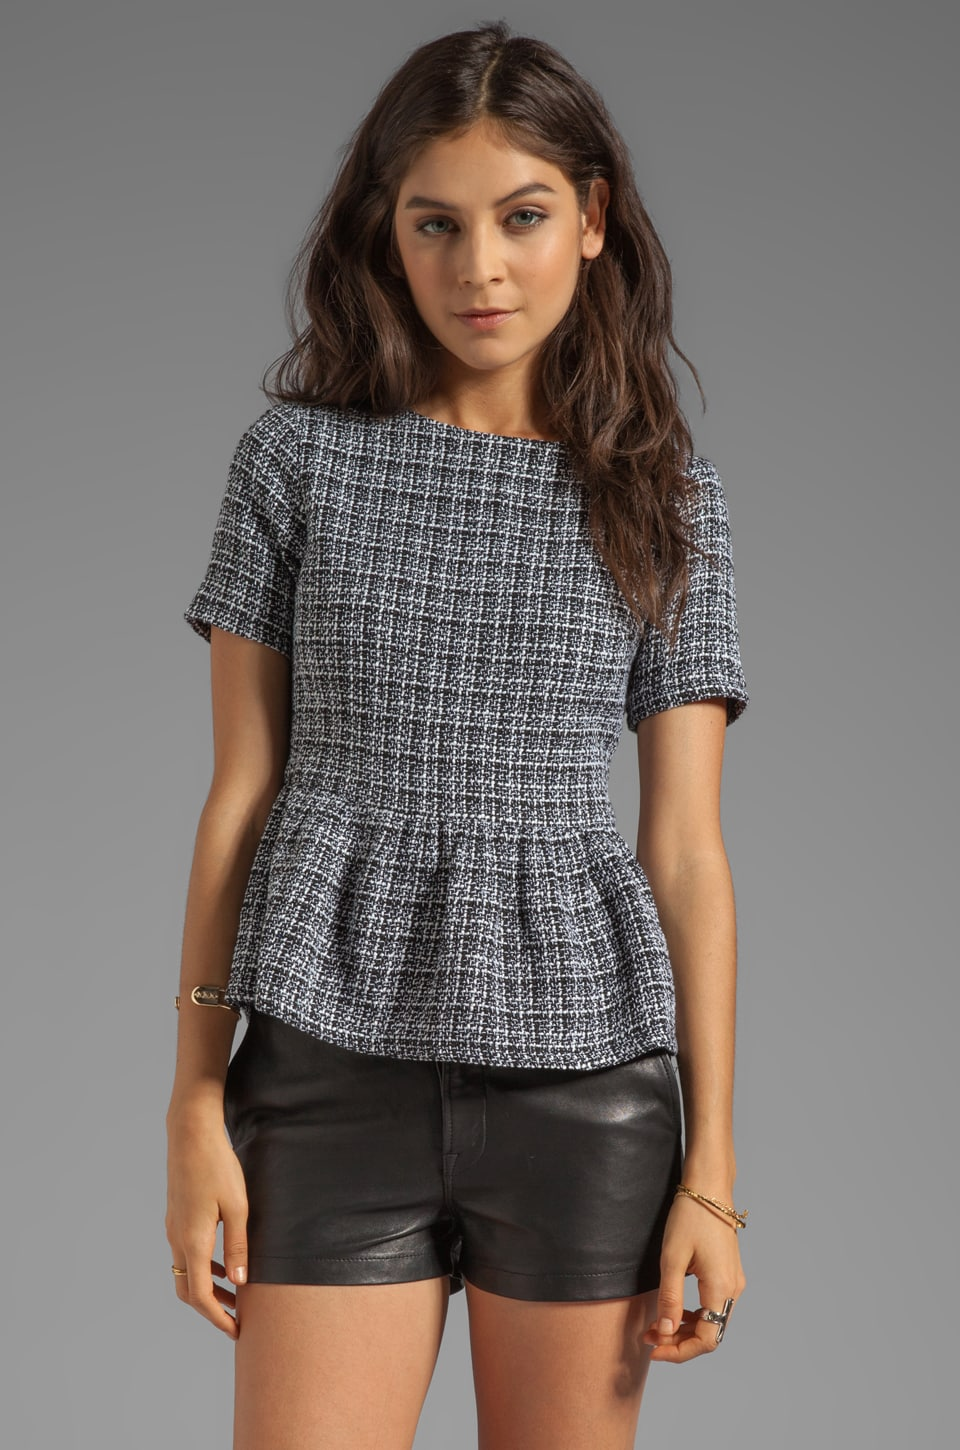 Lucca Couture Peplum Top in Black/White